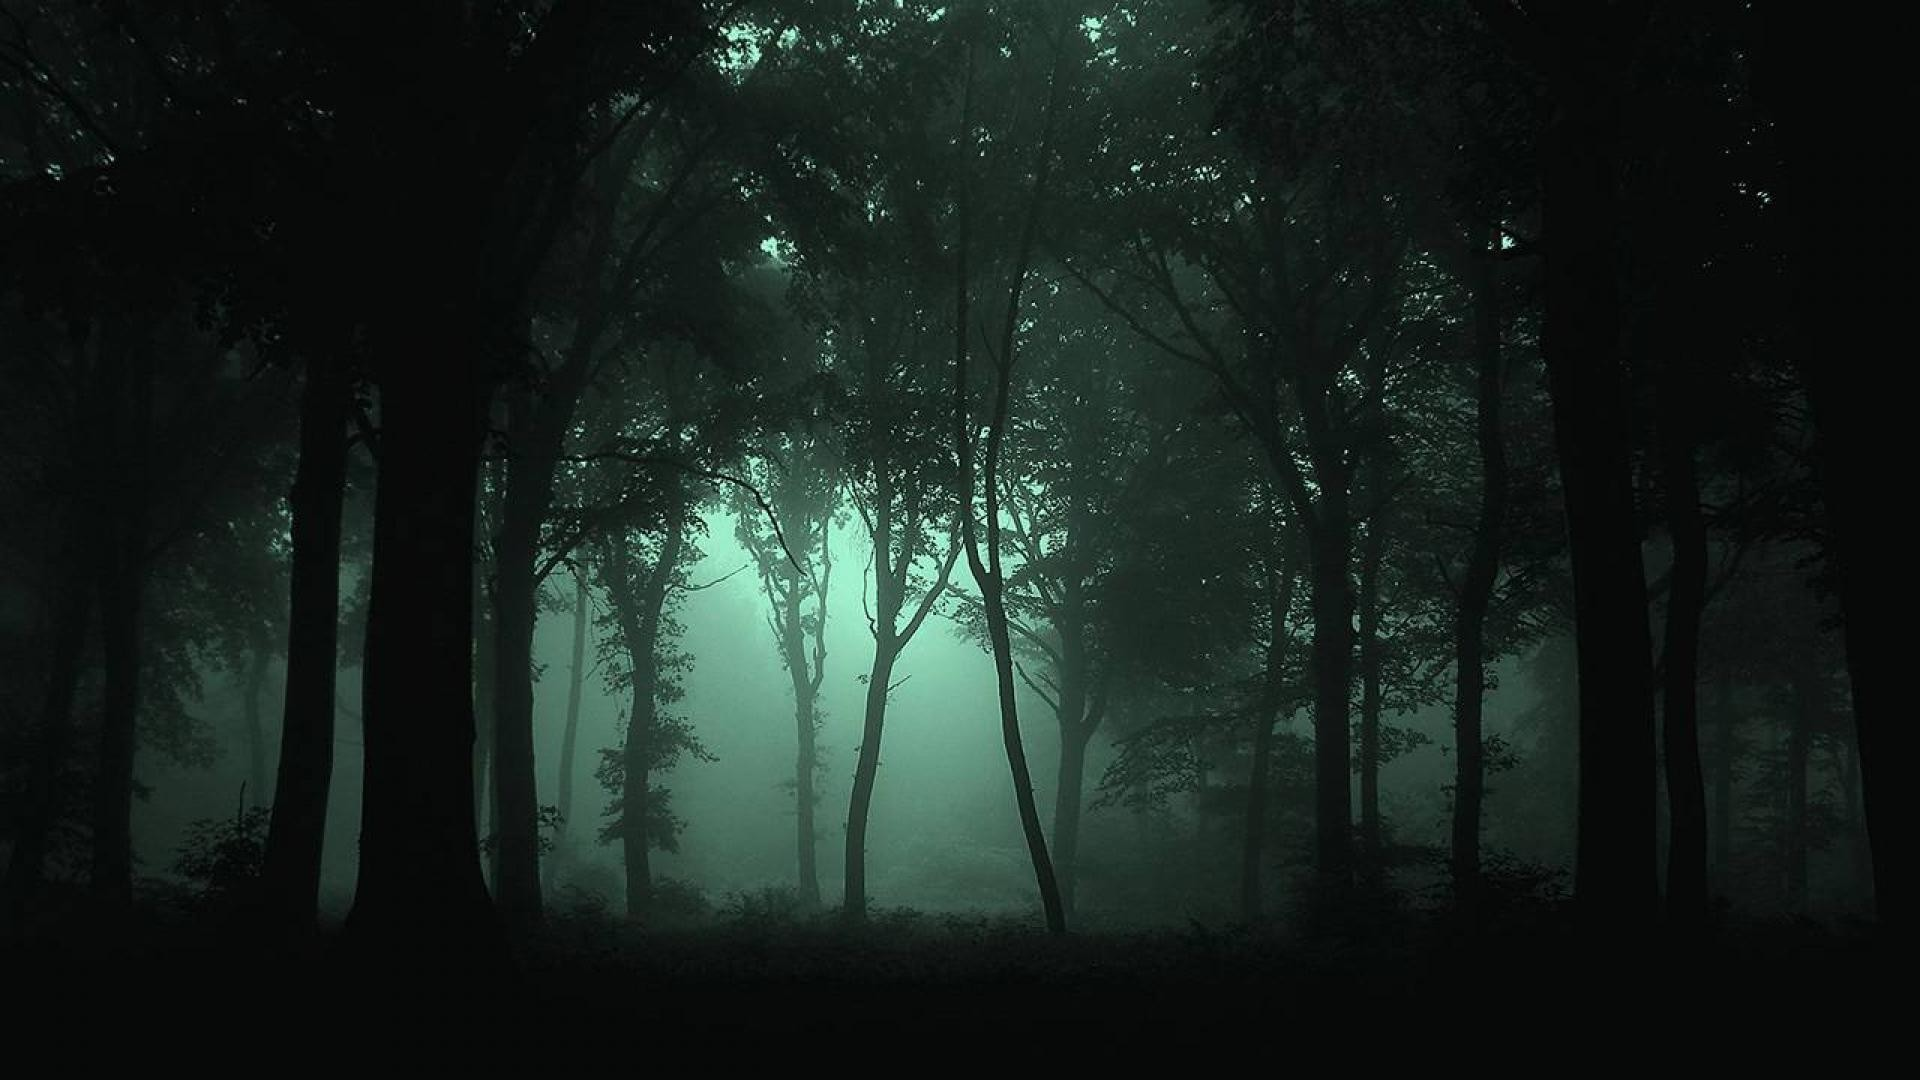 1920x1080 Nature Wallpaper: Dark Forest Wallpapers HD for Wallpaper Background